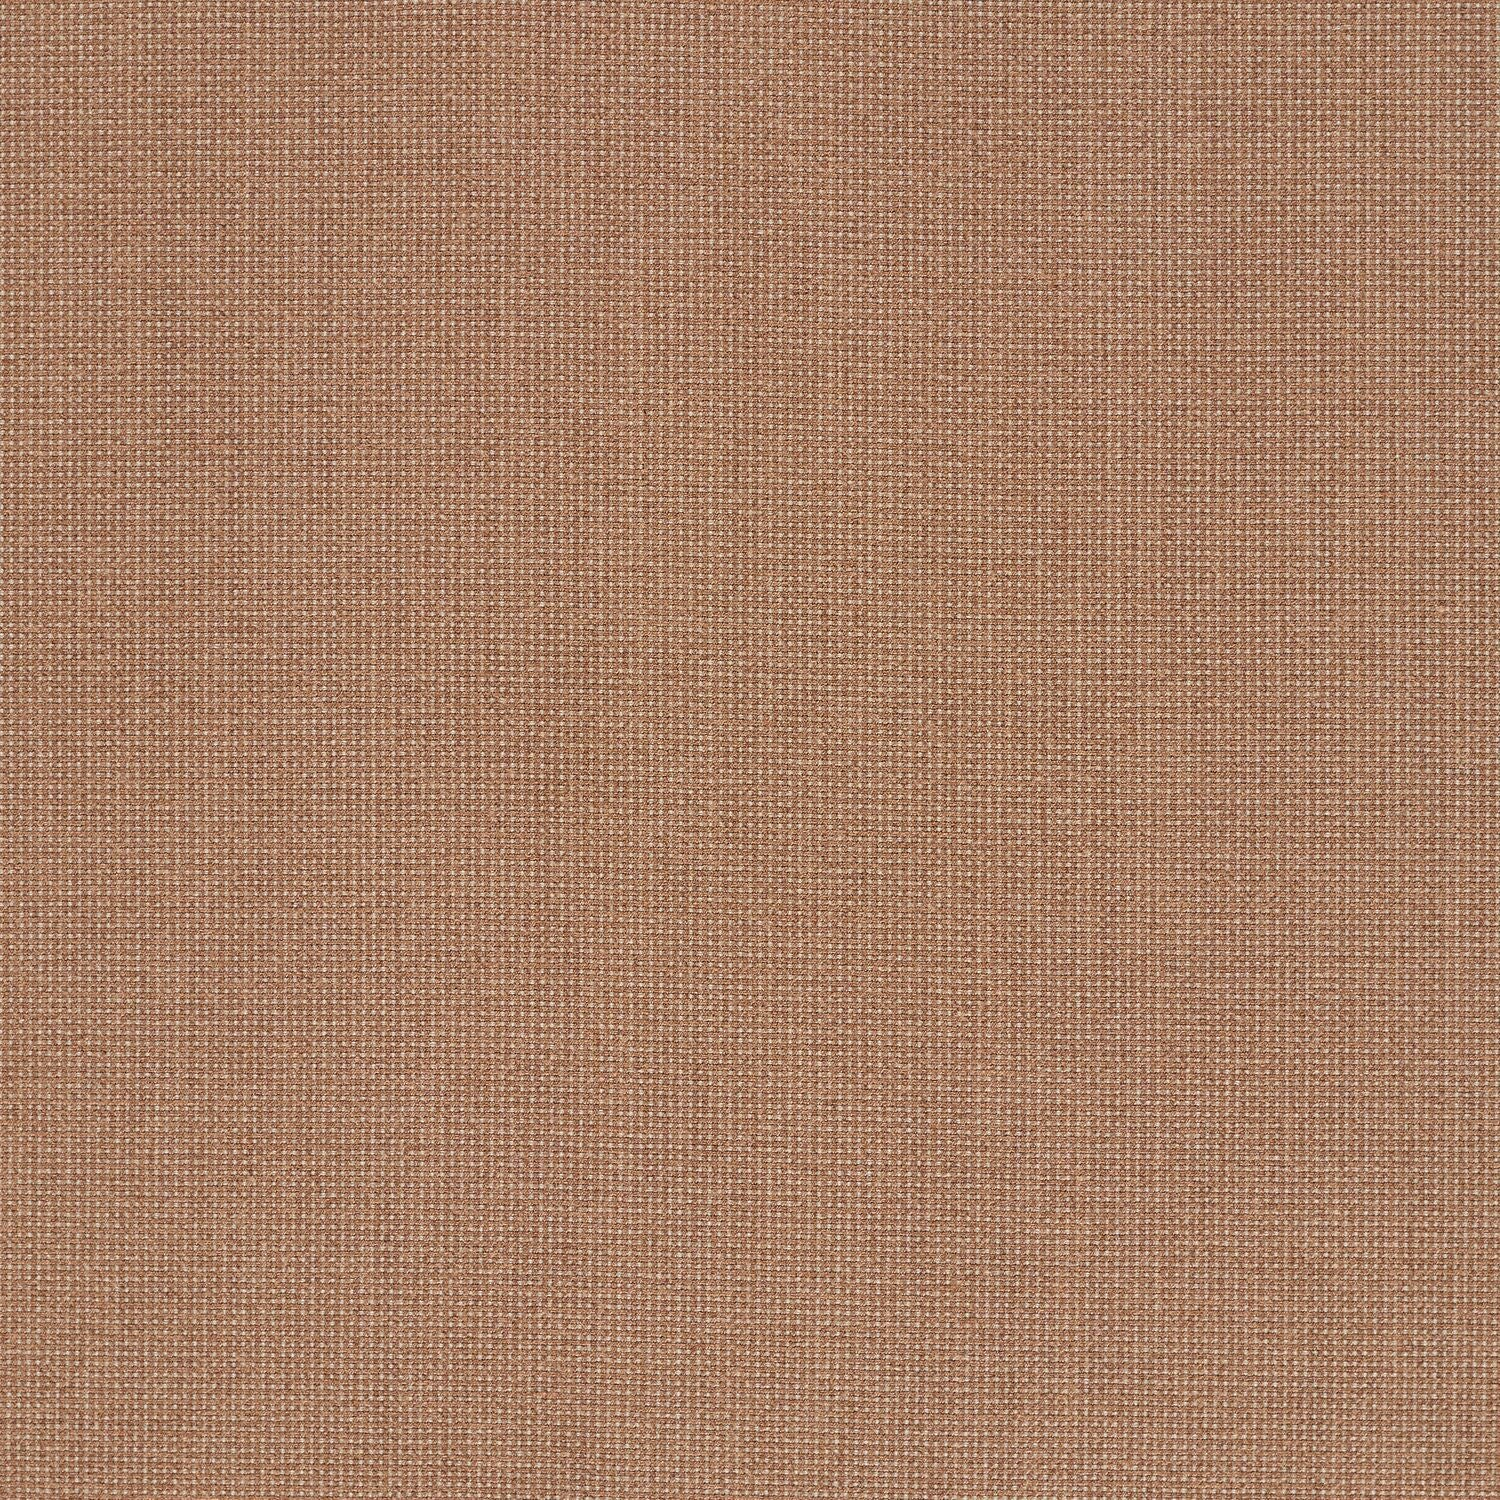 Elastic Wool - Tea - 4067 - 06